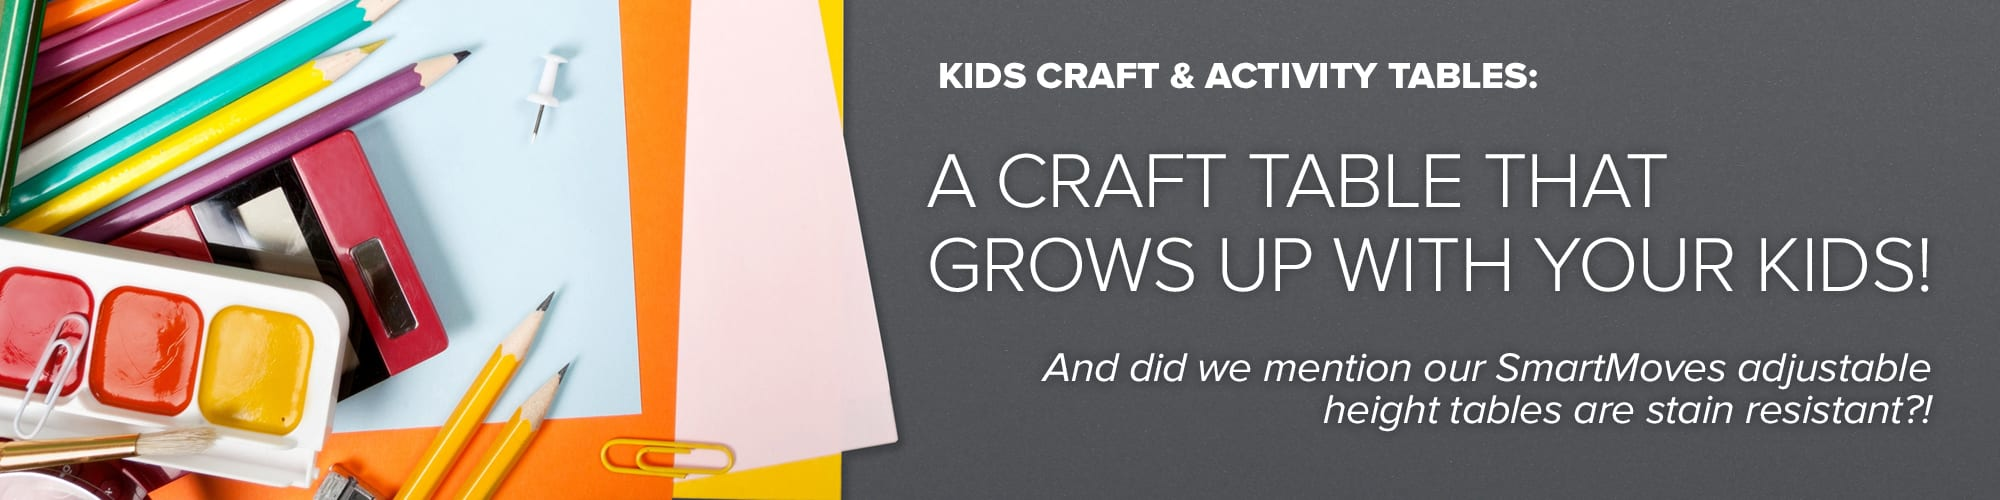 Kids Craft and Activity Page Banner